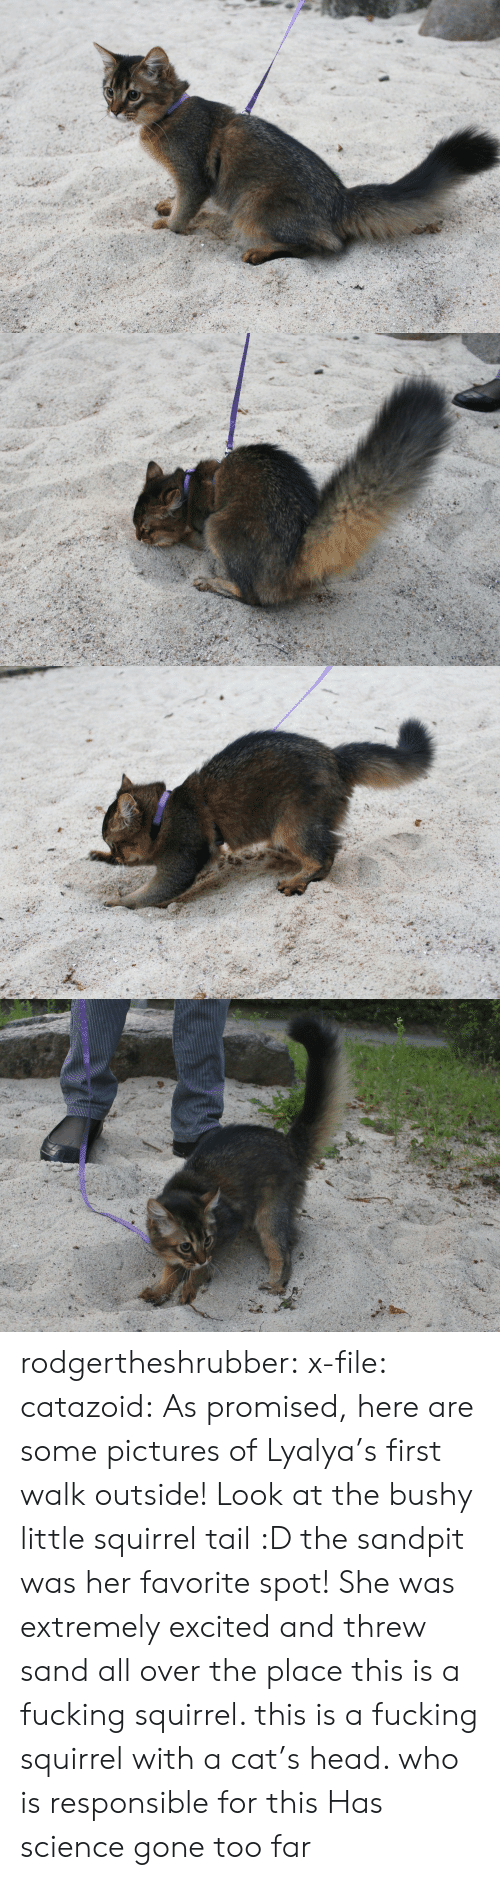 Fucking, Head, and Tumblr: rodgertheshrubber: x-file:  catazoid:  As promised, here are some pictures of Lyalya's first walk outside! Look at the bushy little squirrel tail :D the sandpit was her favorite spot! She was extremely excited and threw sand all over the place  this is a fucking squirrel. this is a fucking squirrel with a cat's head. who is responsible for this   Has science gone too far